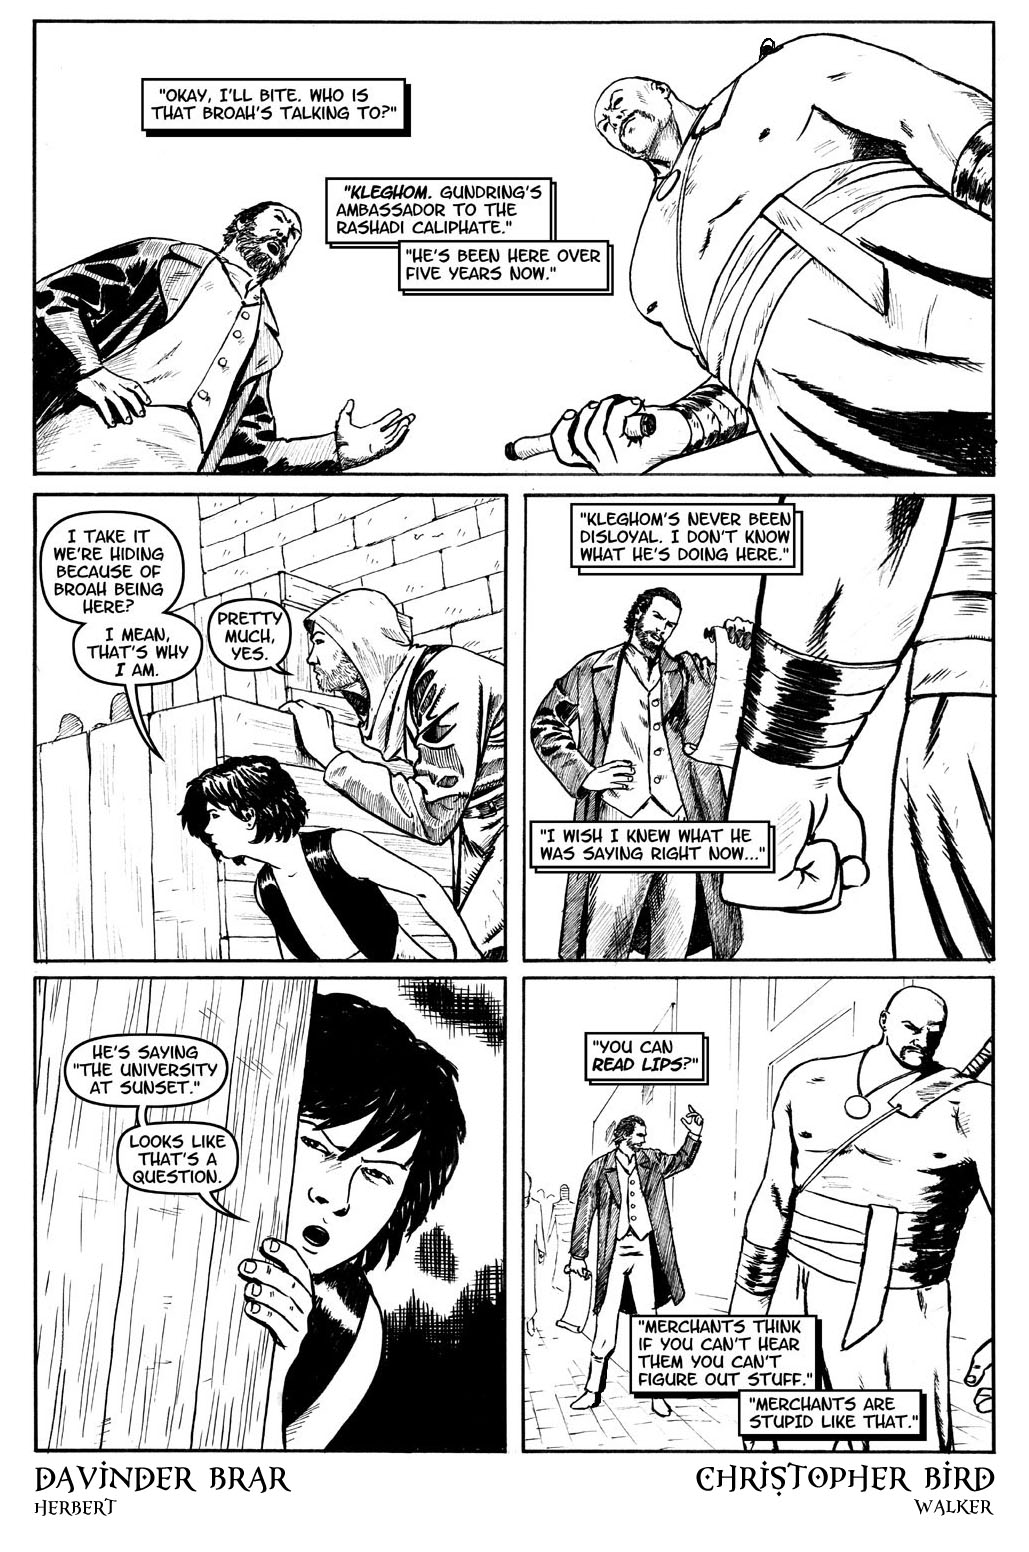 Book 3, page 17